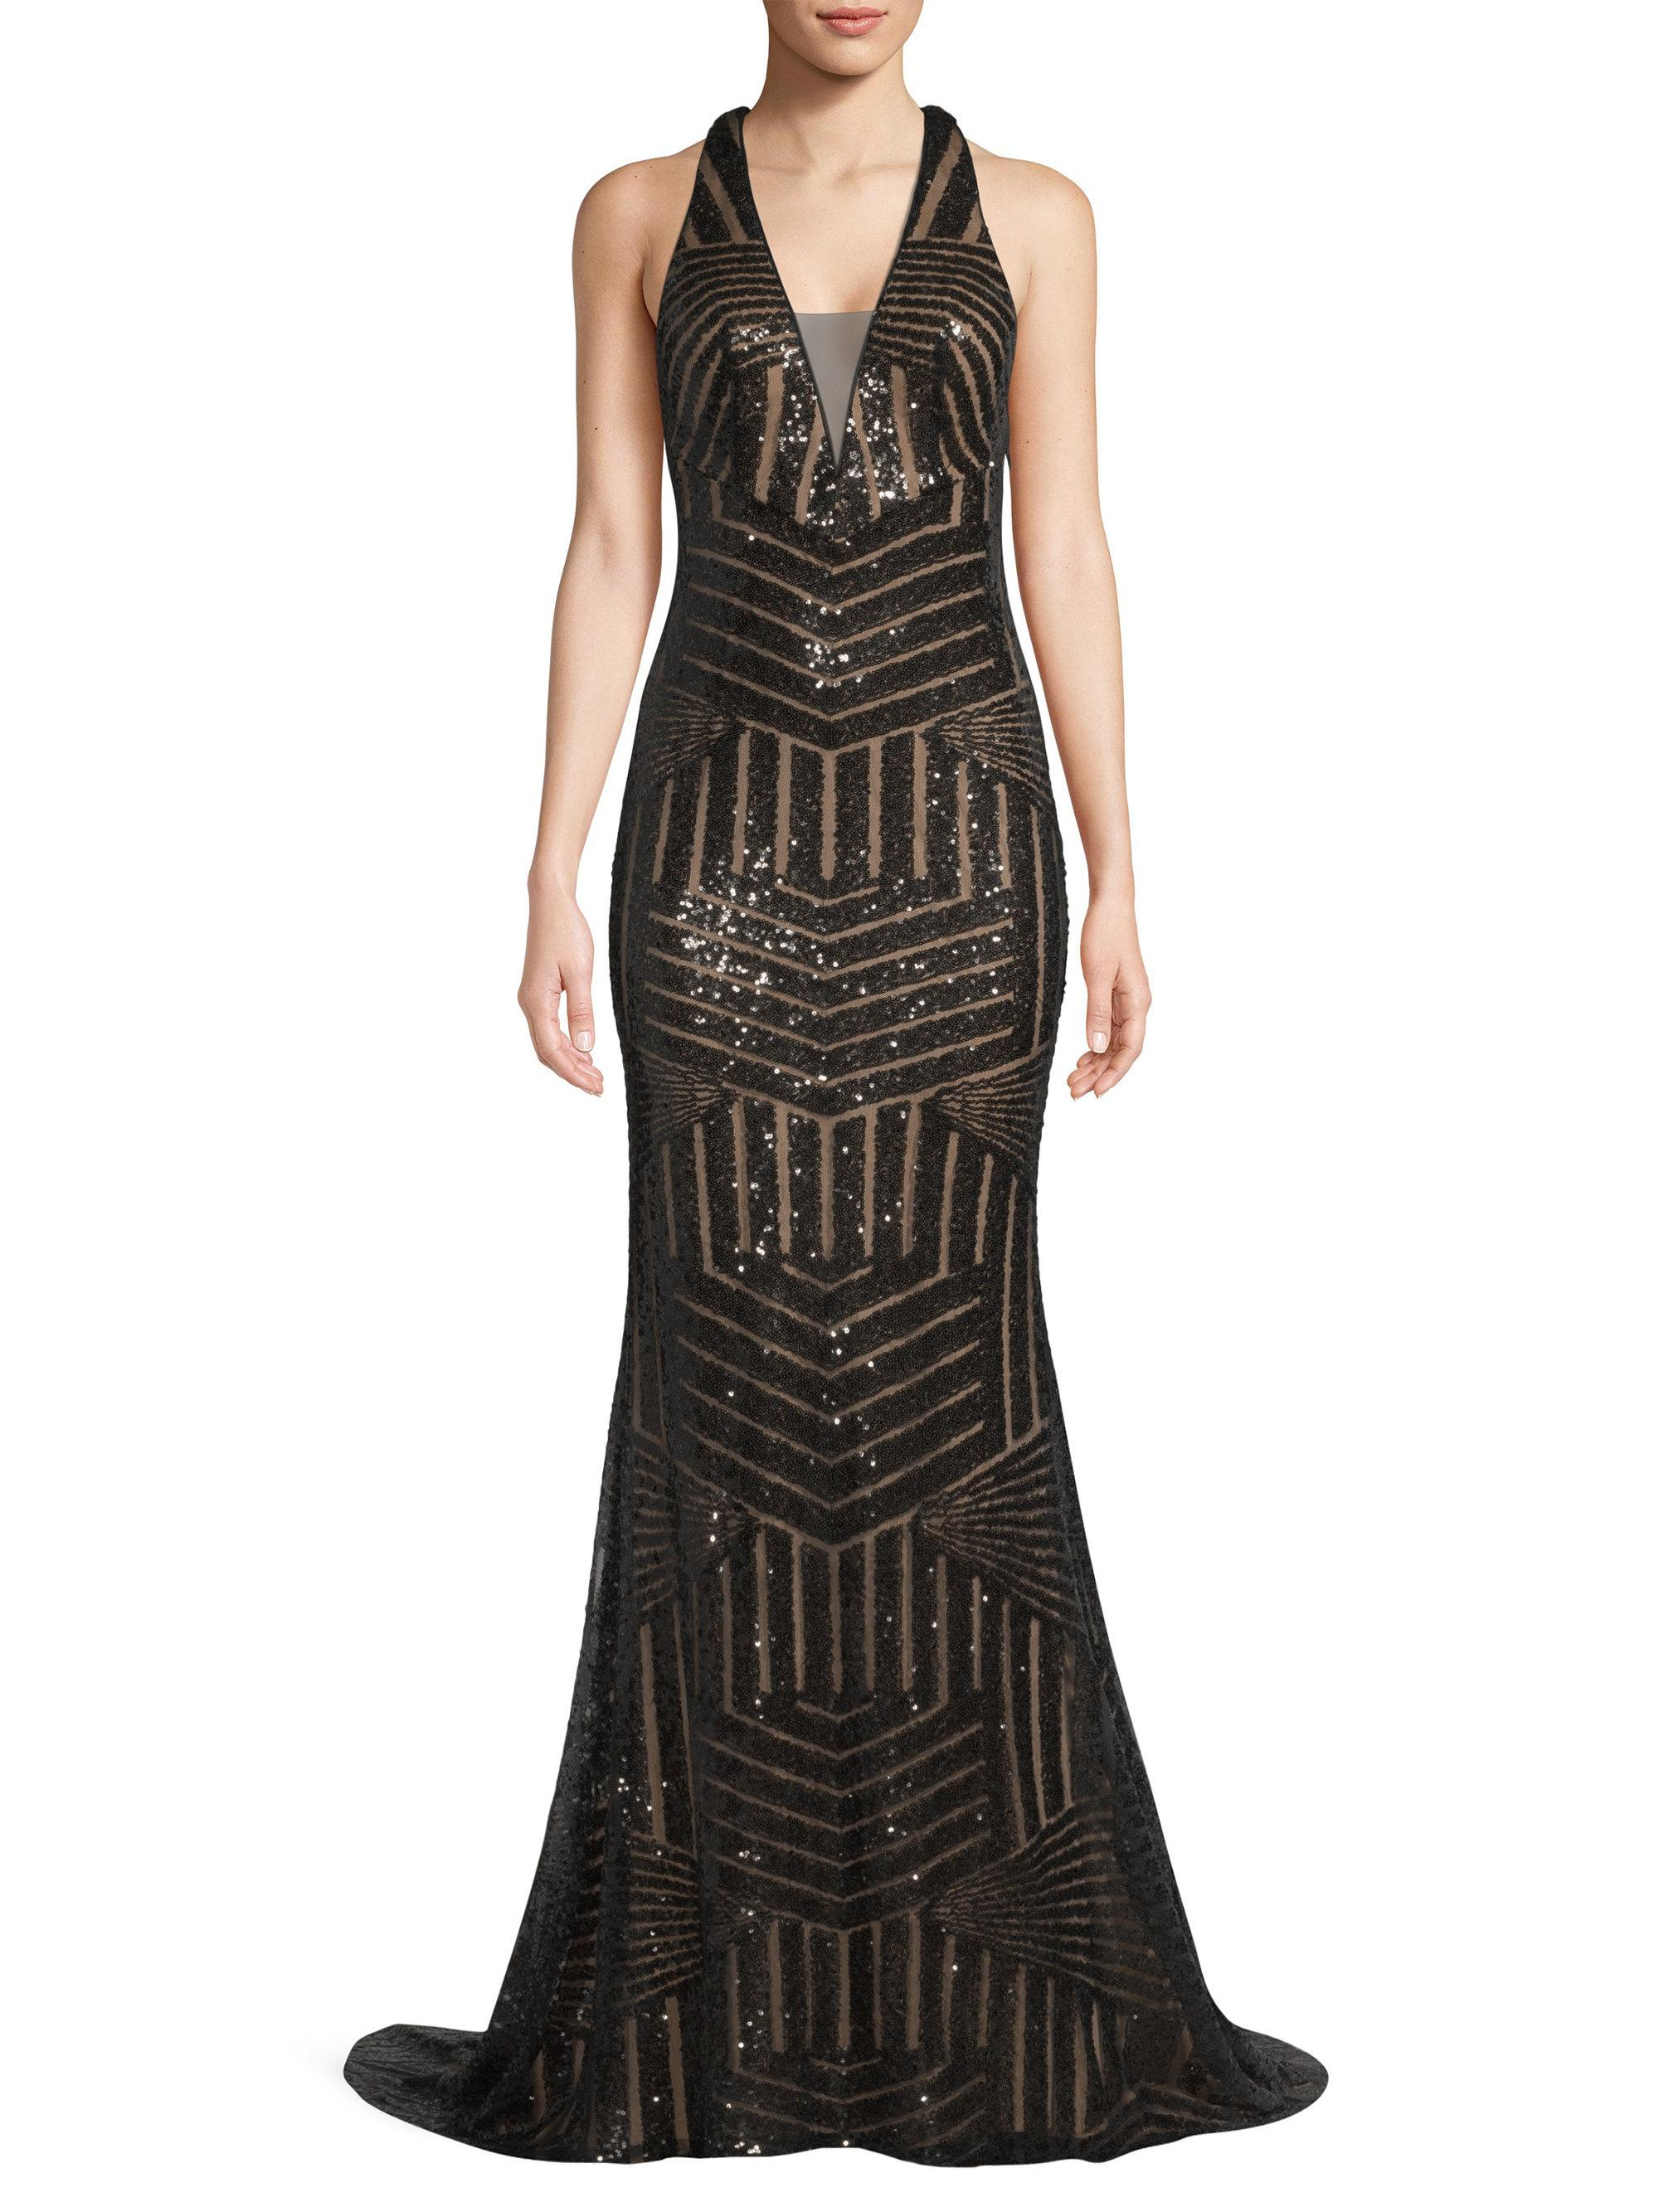 eff49e18724 Basix Black Label Graphic Mermaid Gown in Black - Lyst